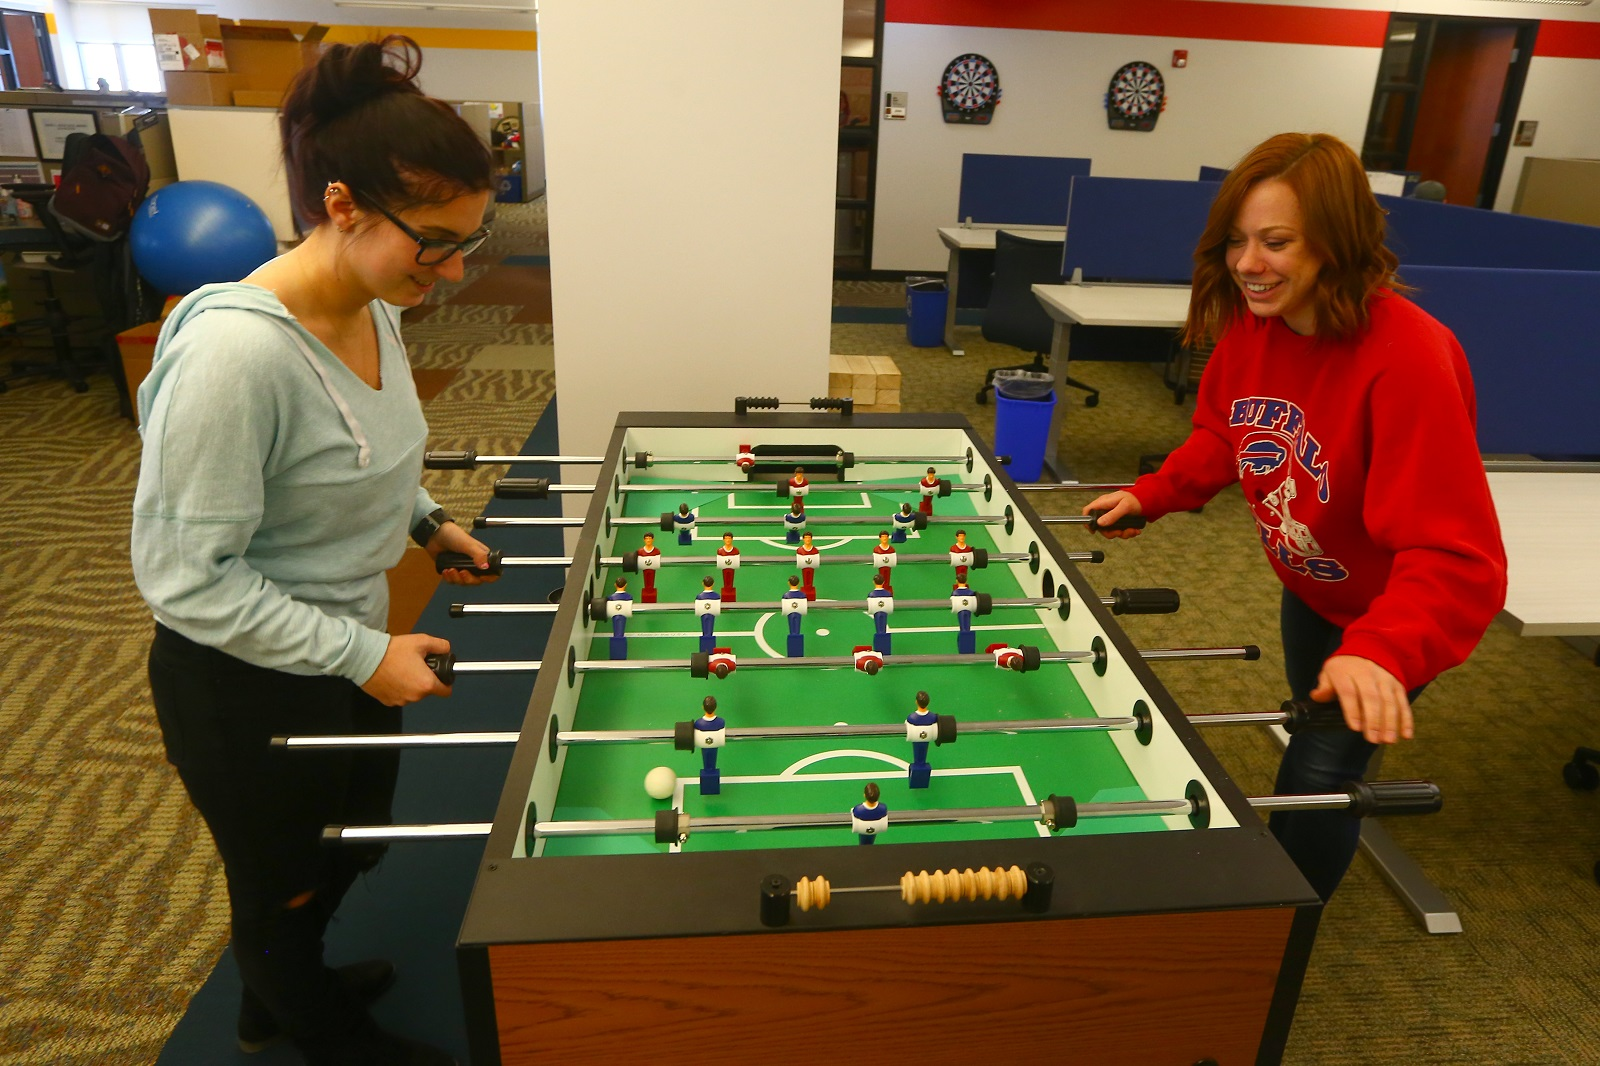 New Era's customer service administrator Sarah Morris, left, and Morgan Kissel, a customer relations analyst, play foosball while at work. (John Hickey/Buffalo News)